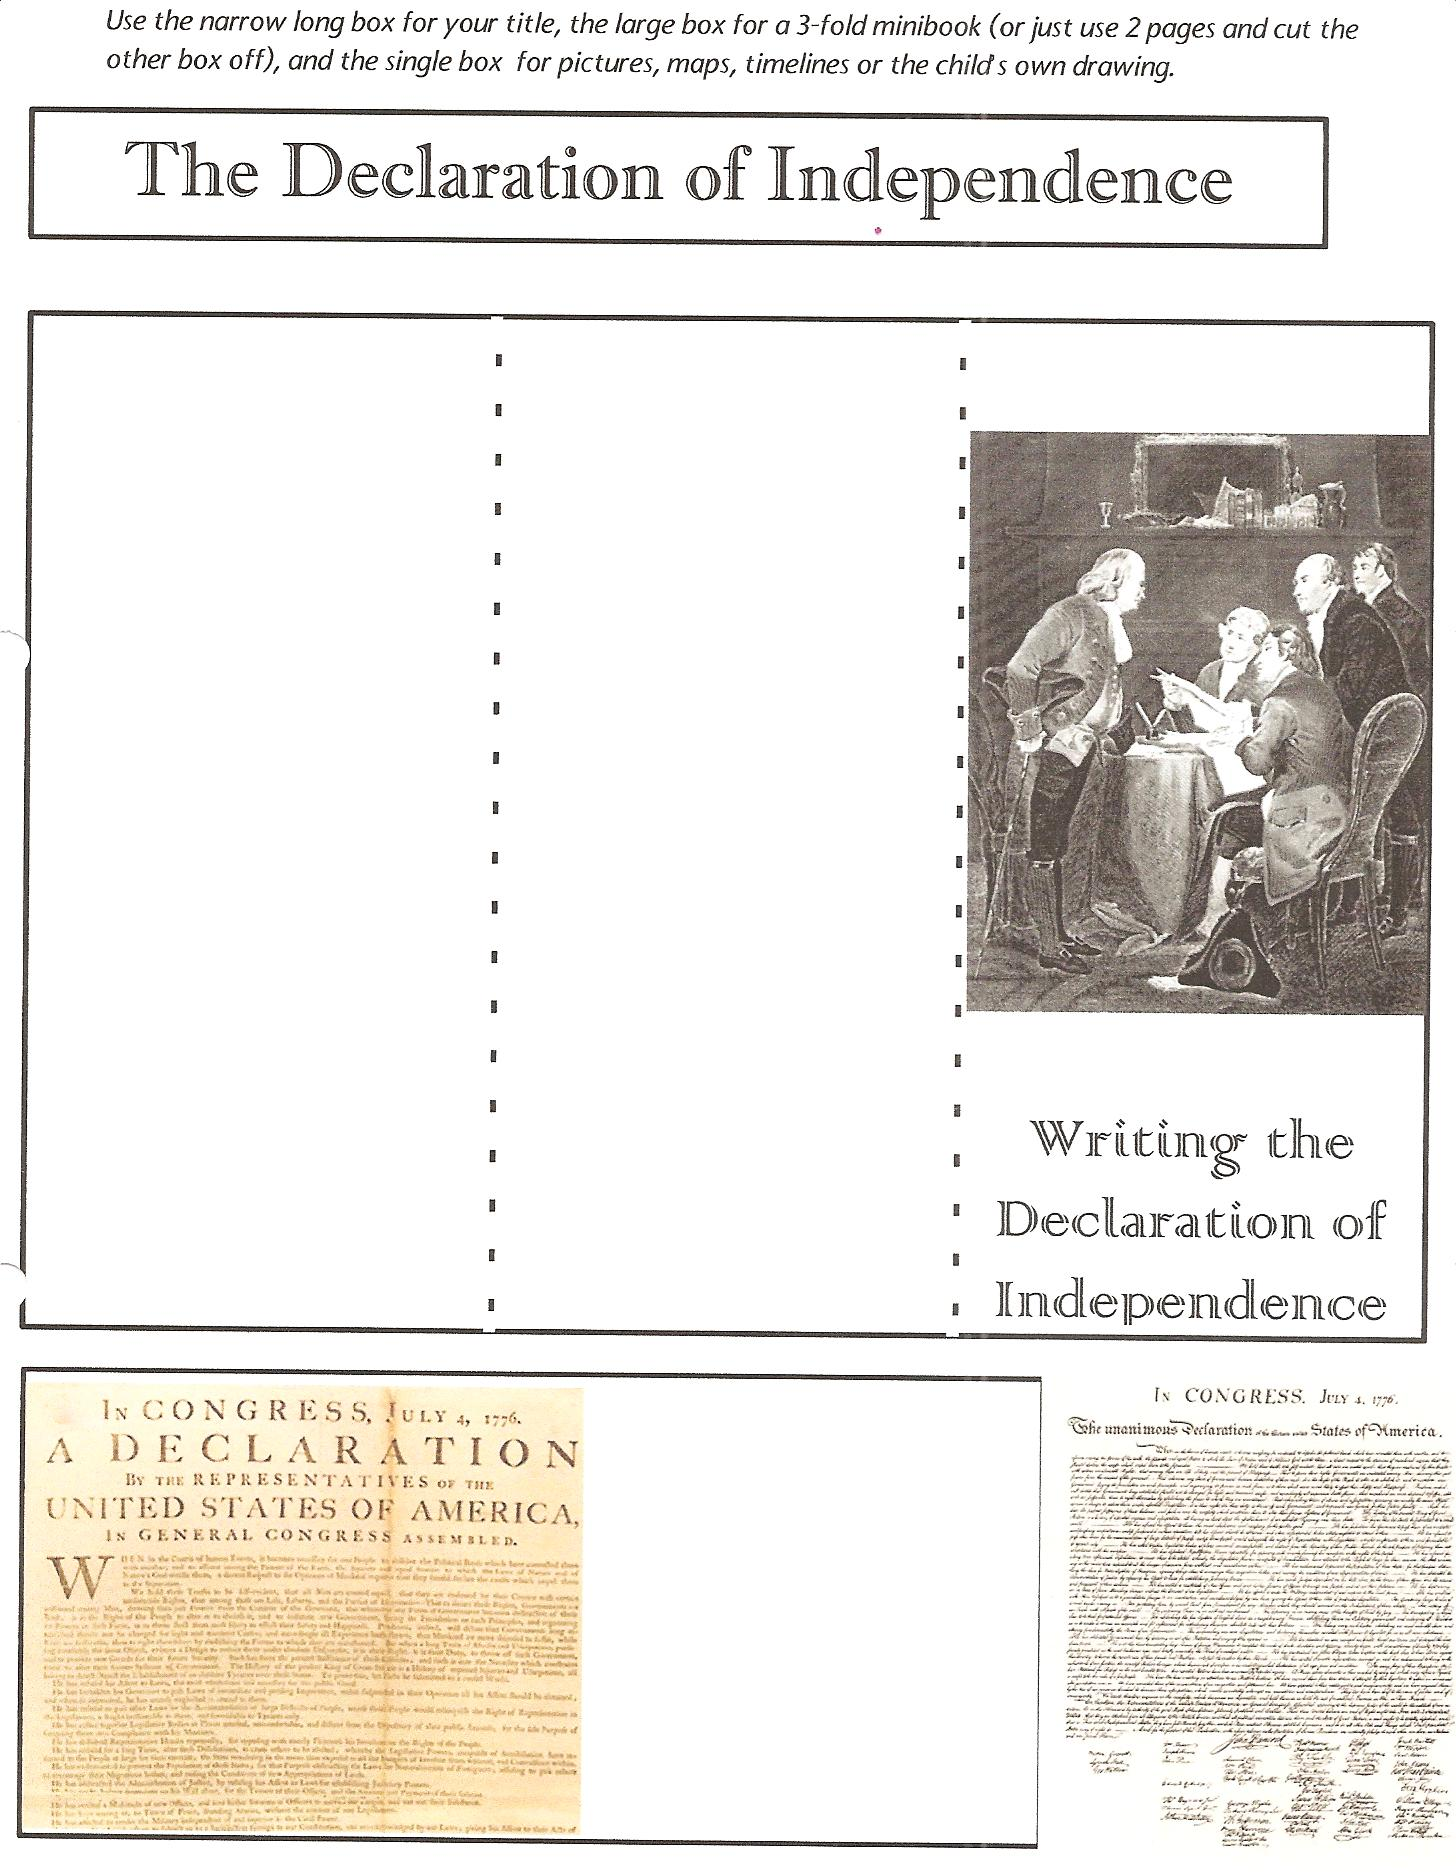 Declaration Of Independence Worksheets For Kids Free Worksheets – Declaration of Independence Worksheets